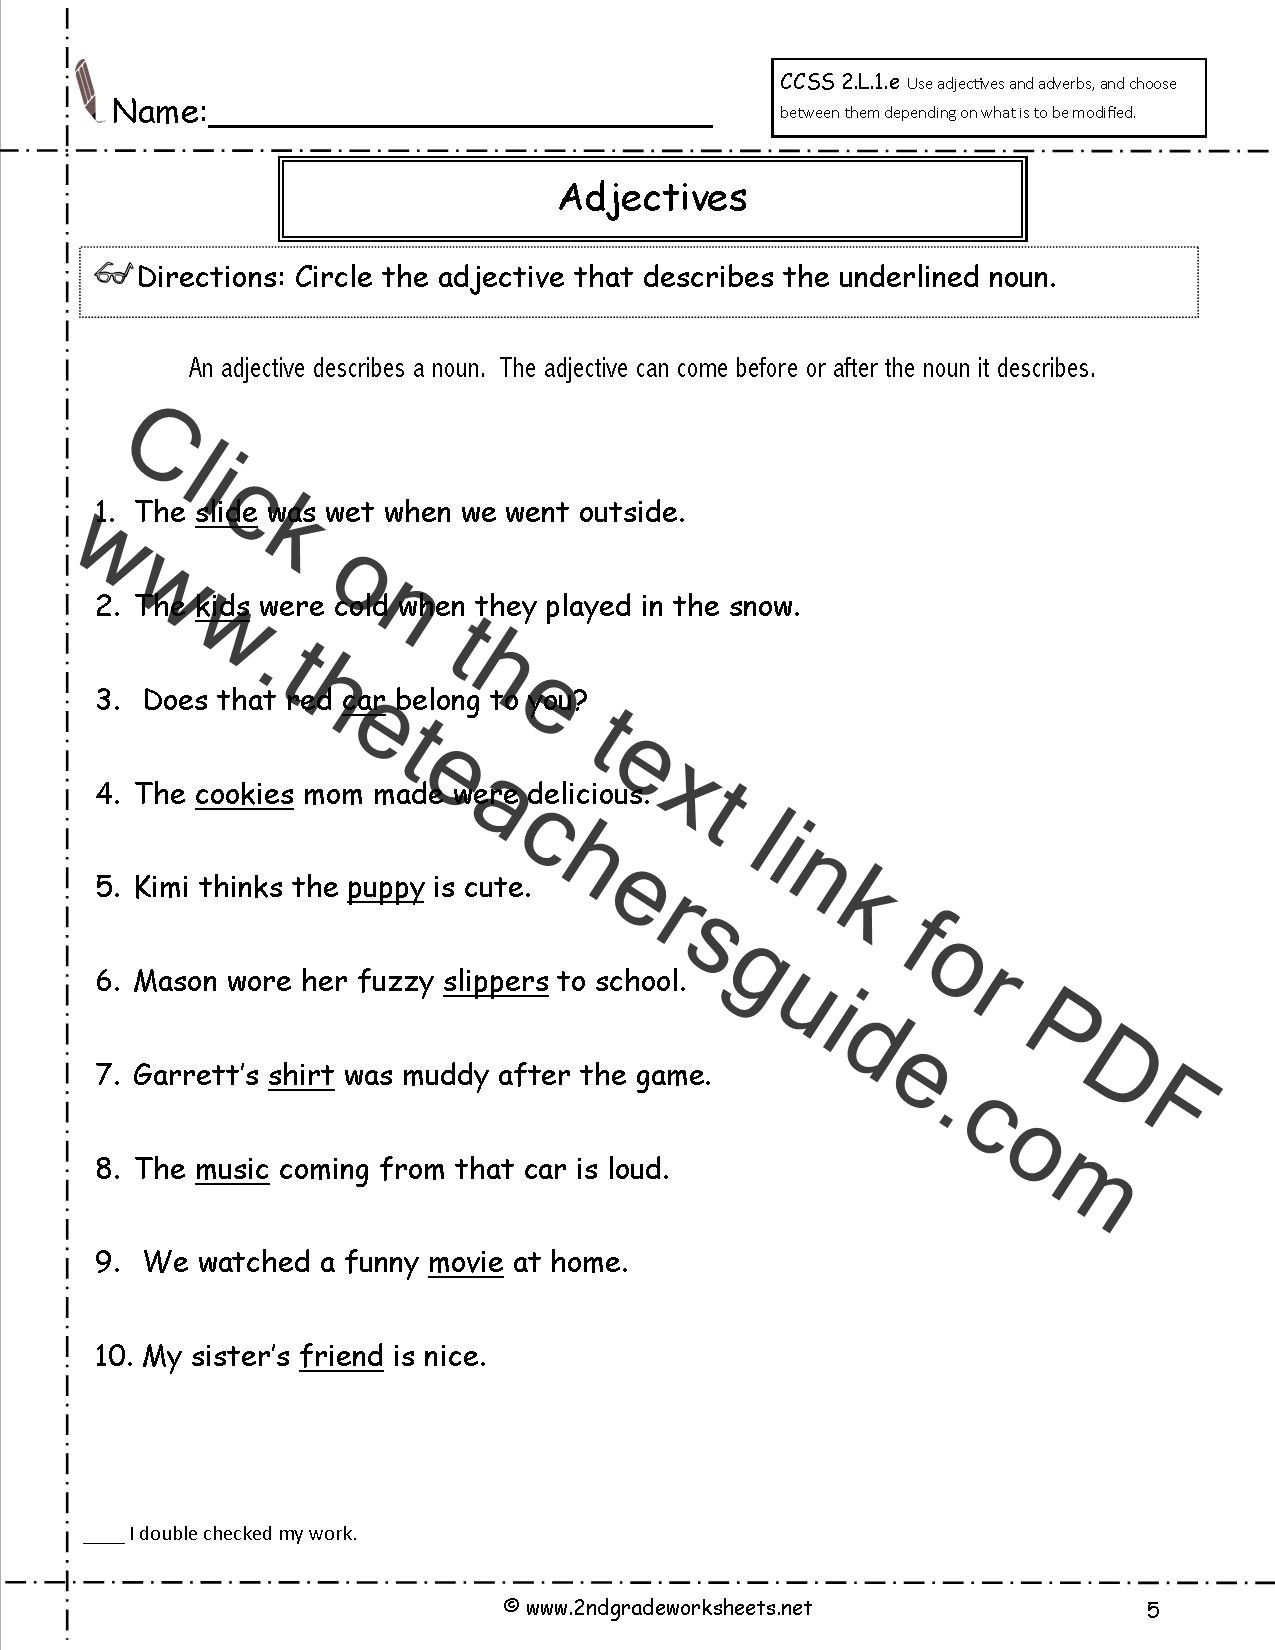 Adjective Worksheets 2nd Grade Free Printable Worksheet Adjectives and Adverbs